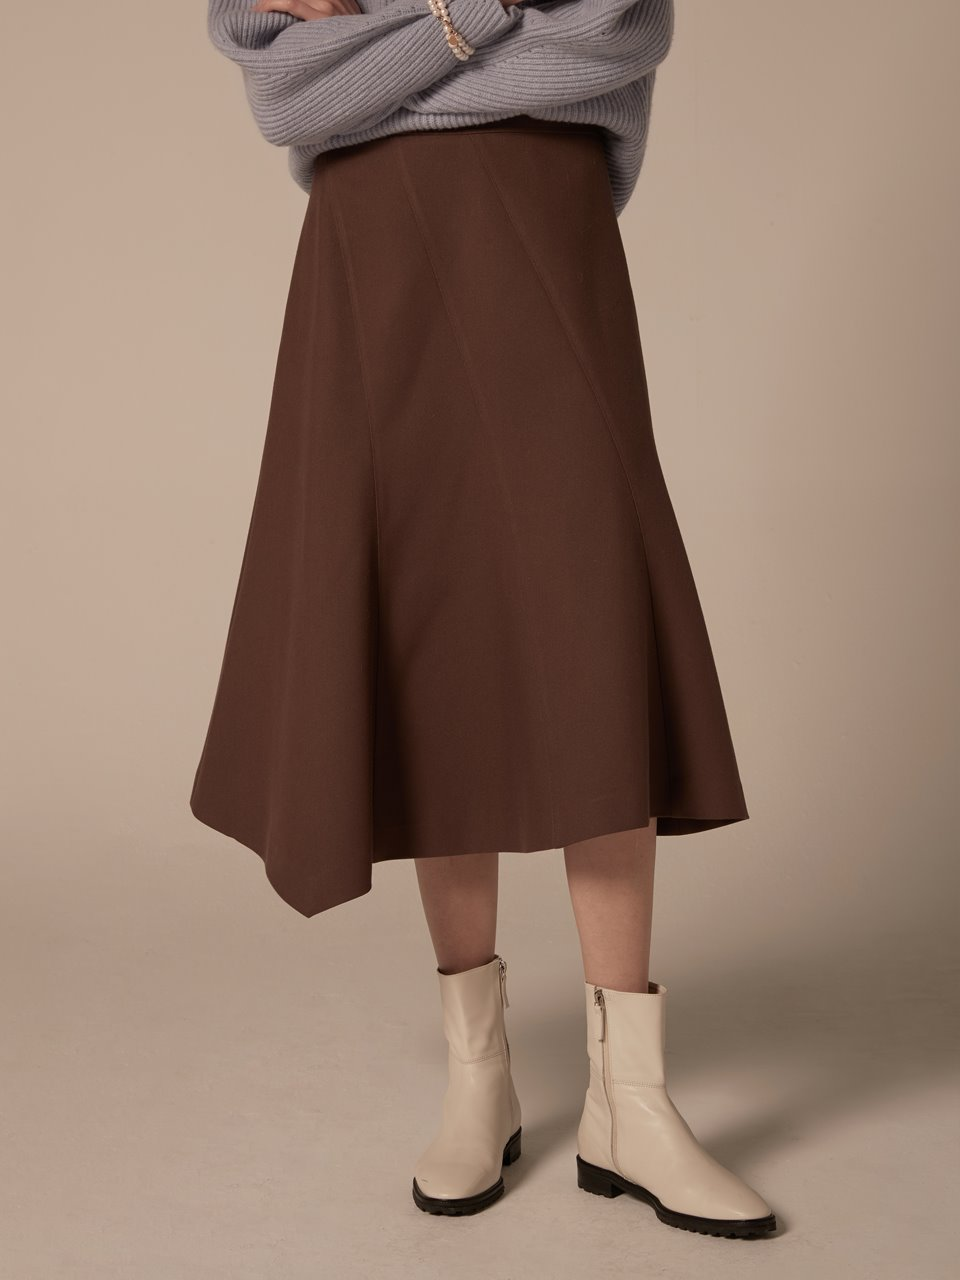 Diagonal cut skirt - Brown